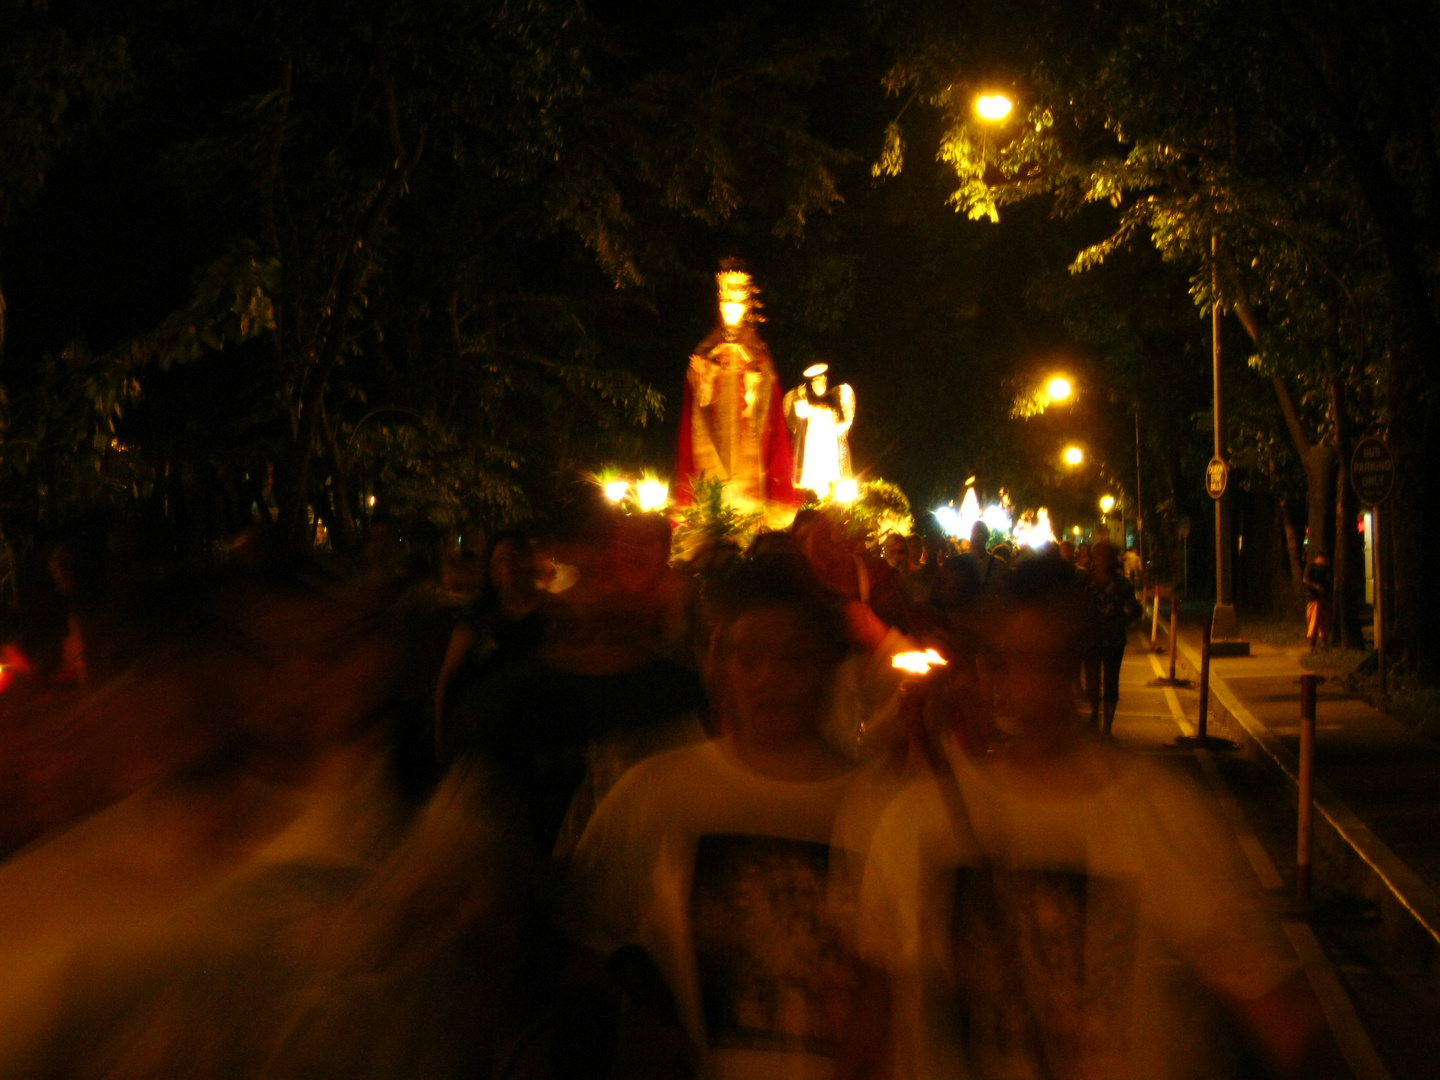 The Procession at Night